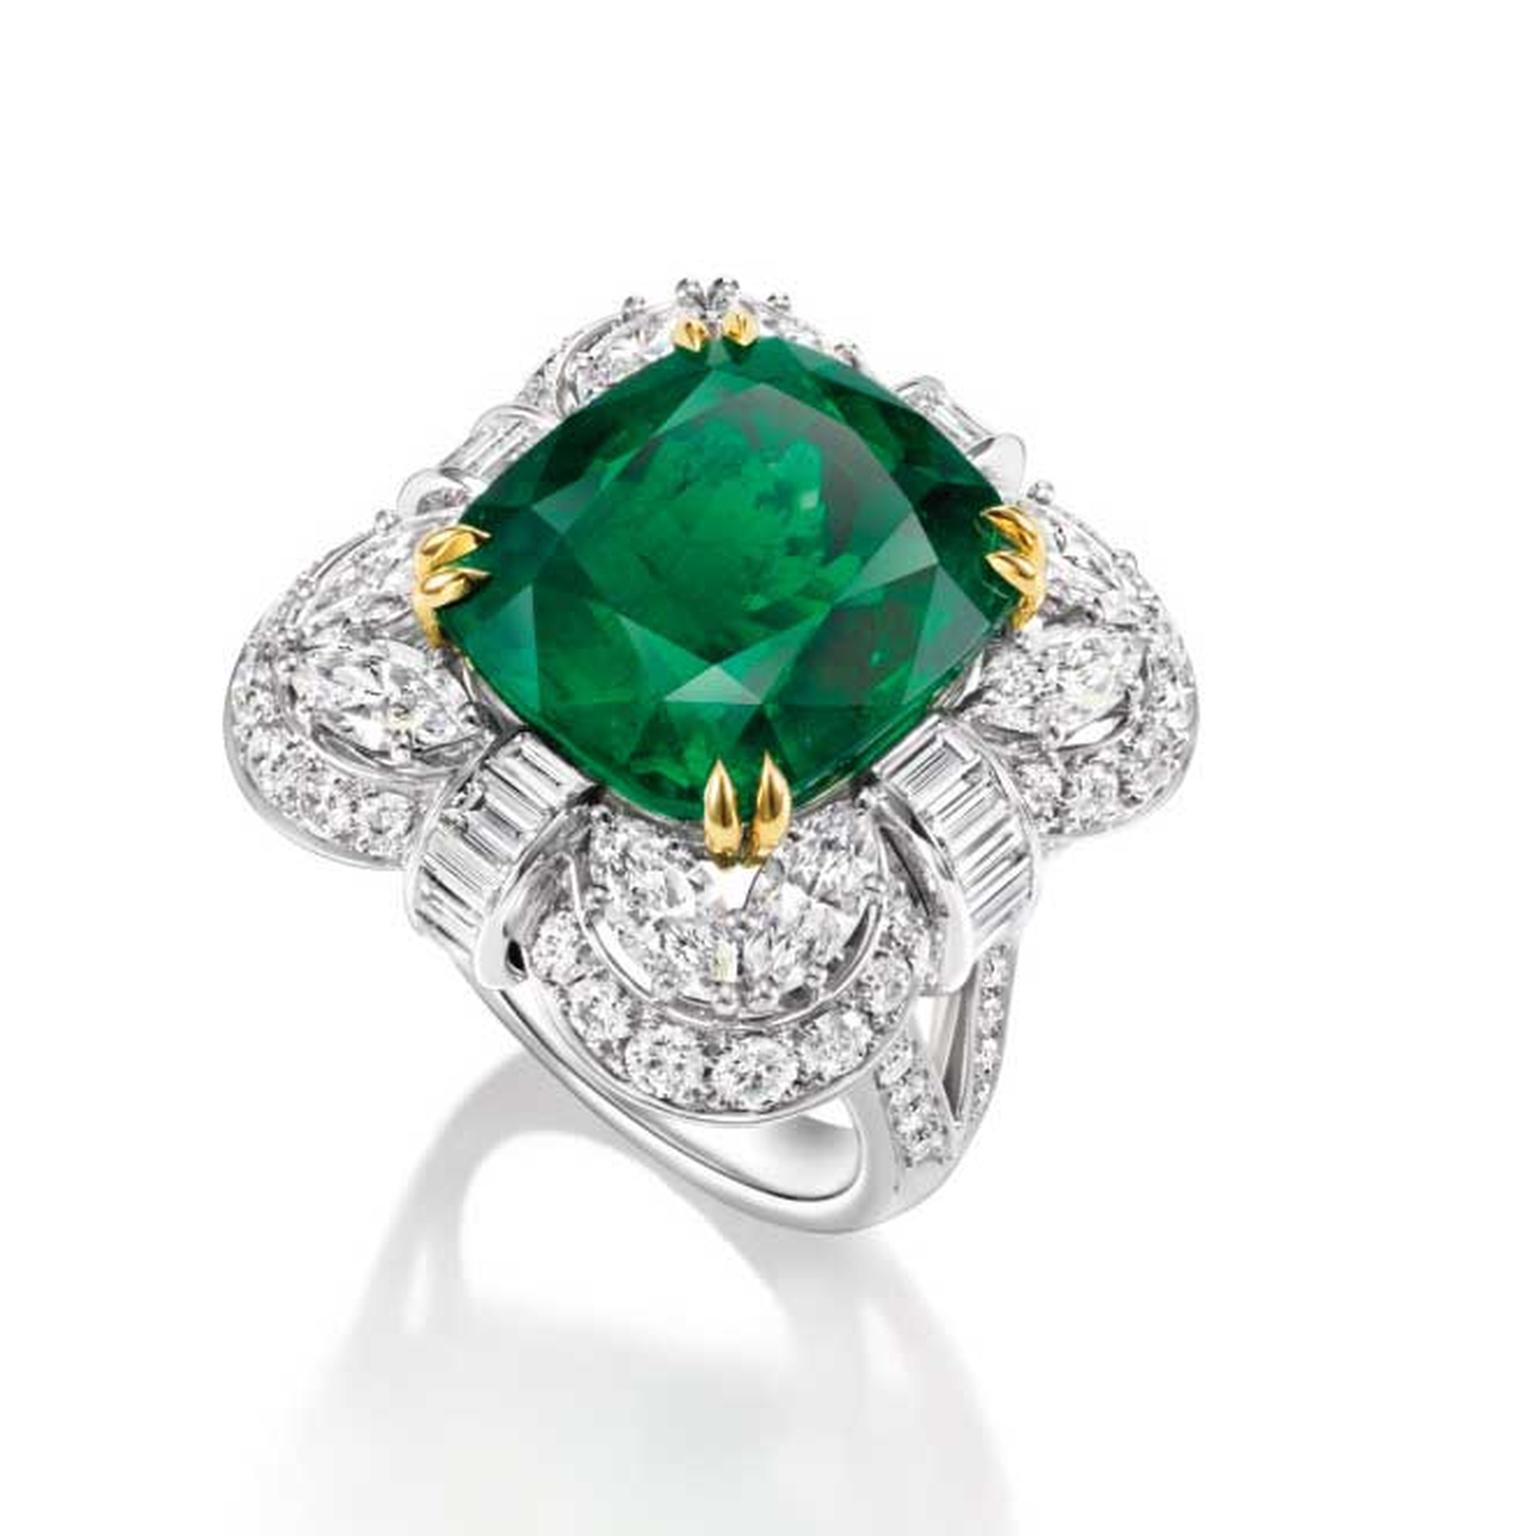 Harry Winston emerald cushion cut 15.67 carat ring